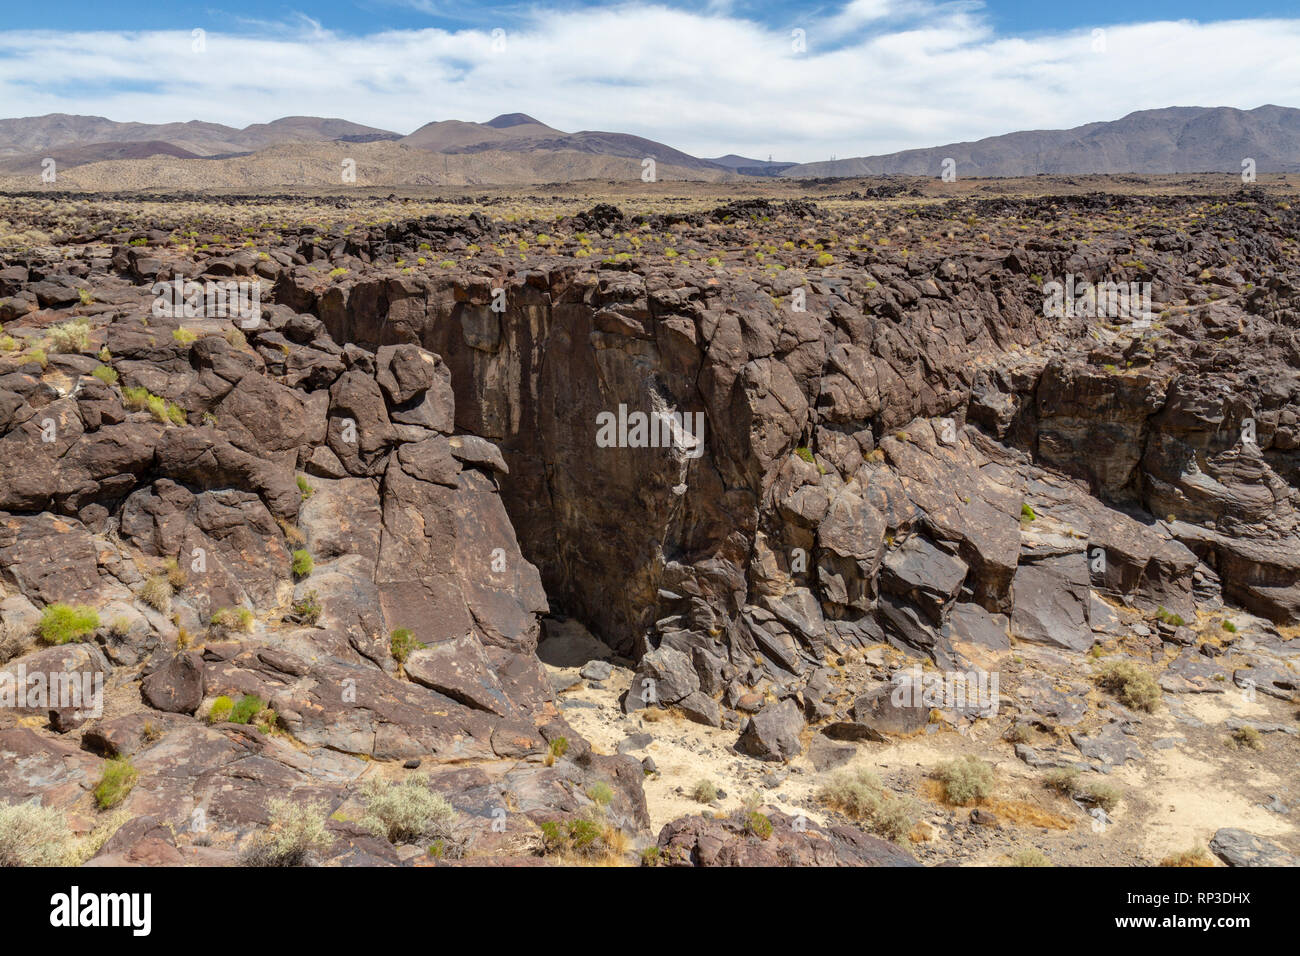 The Fossil Falls, a unique volcanic feature near Little Lake, California, United States. - Stock Image